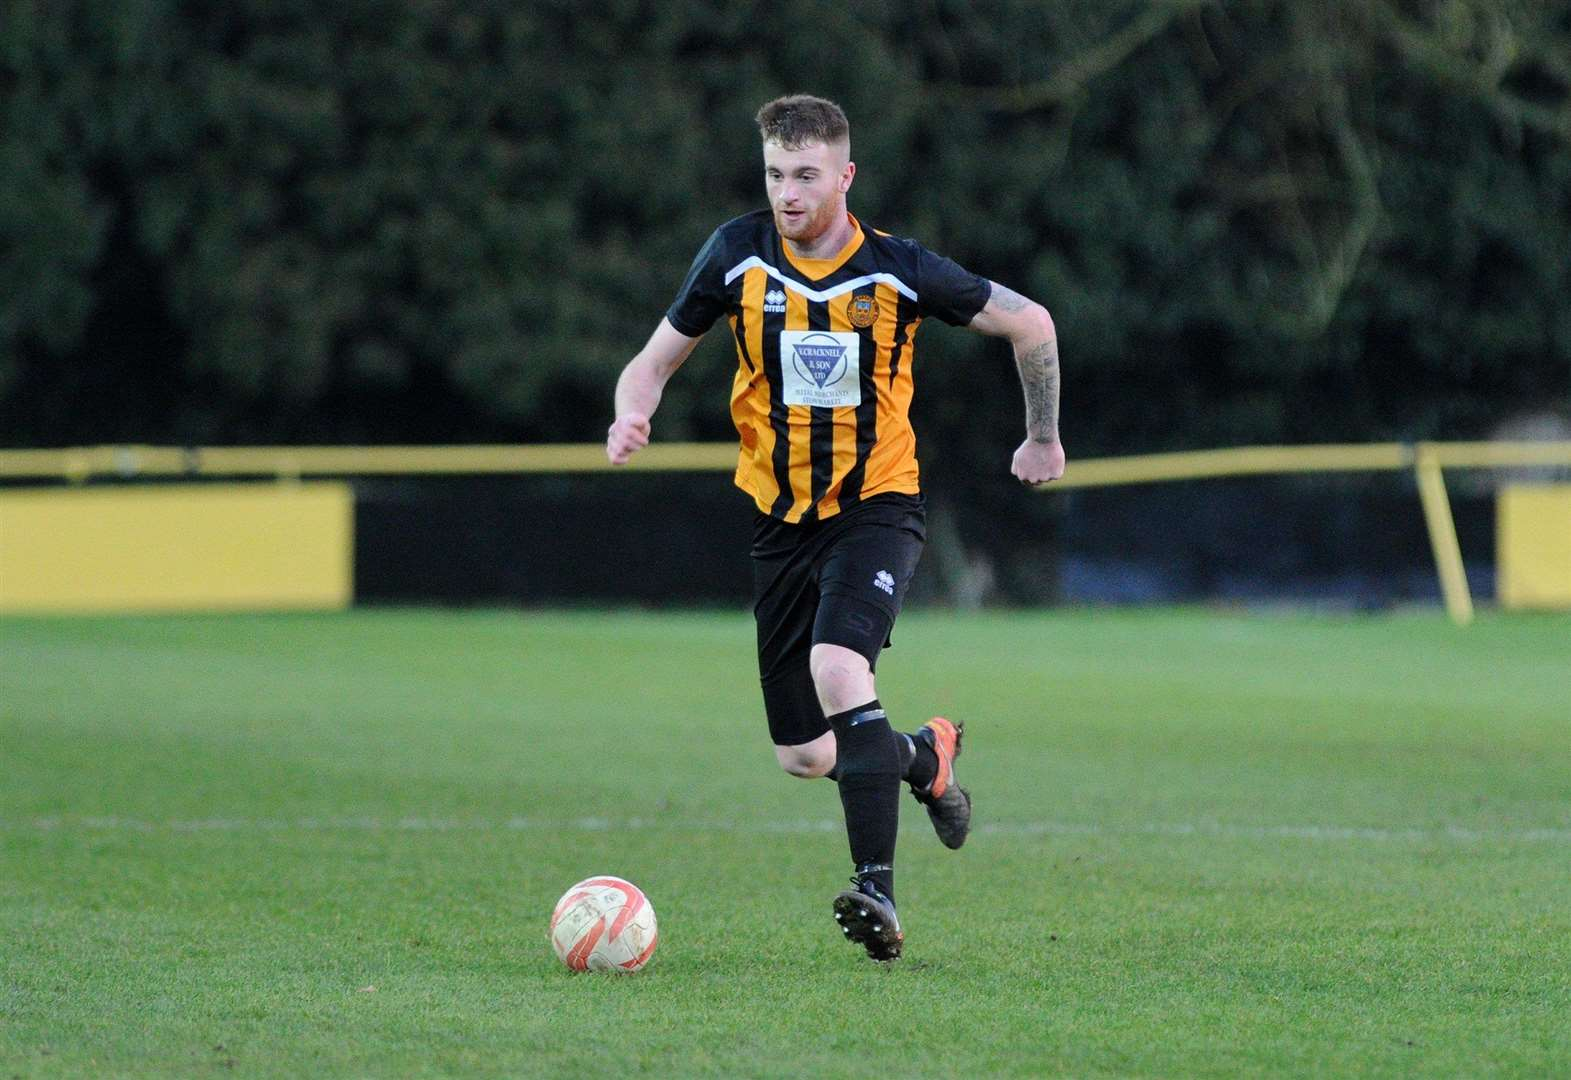 THURLOW NUNN: Duo head for Stow exit